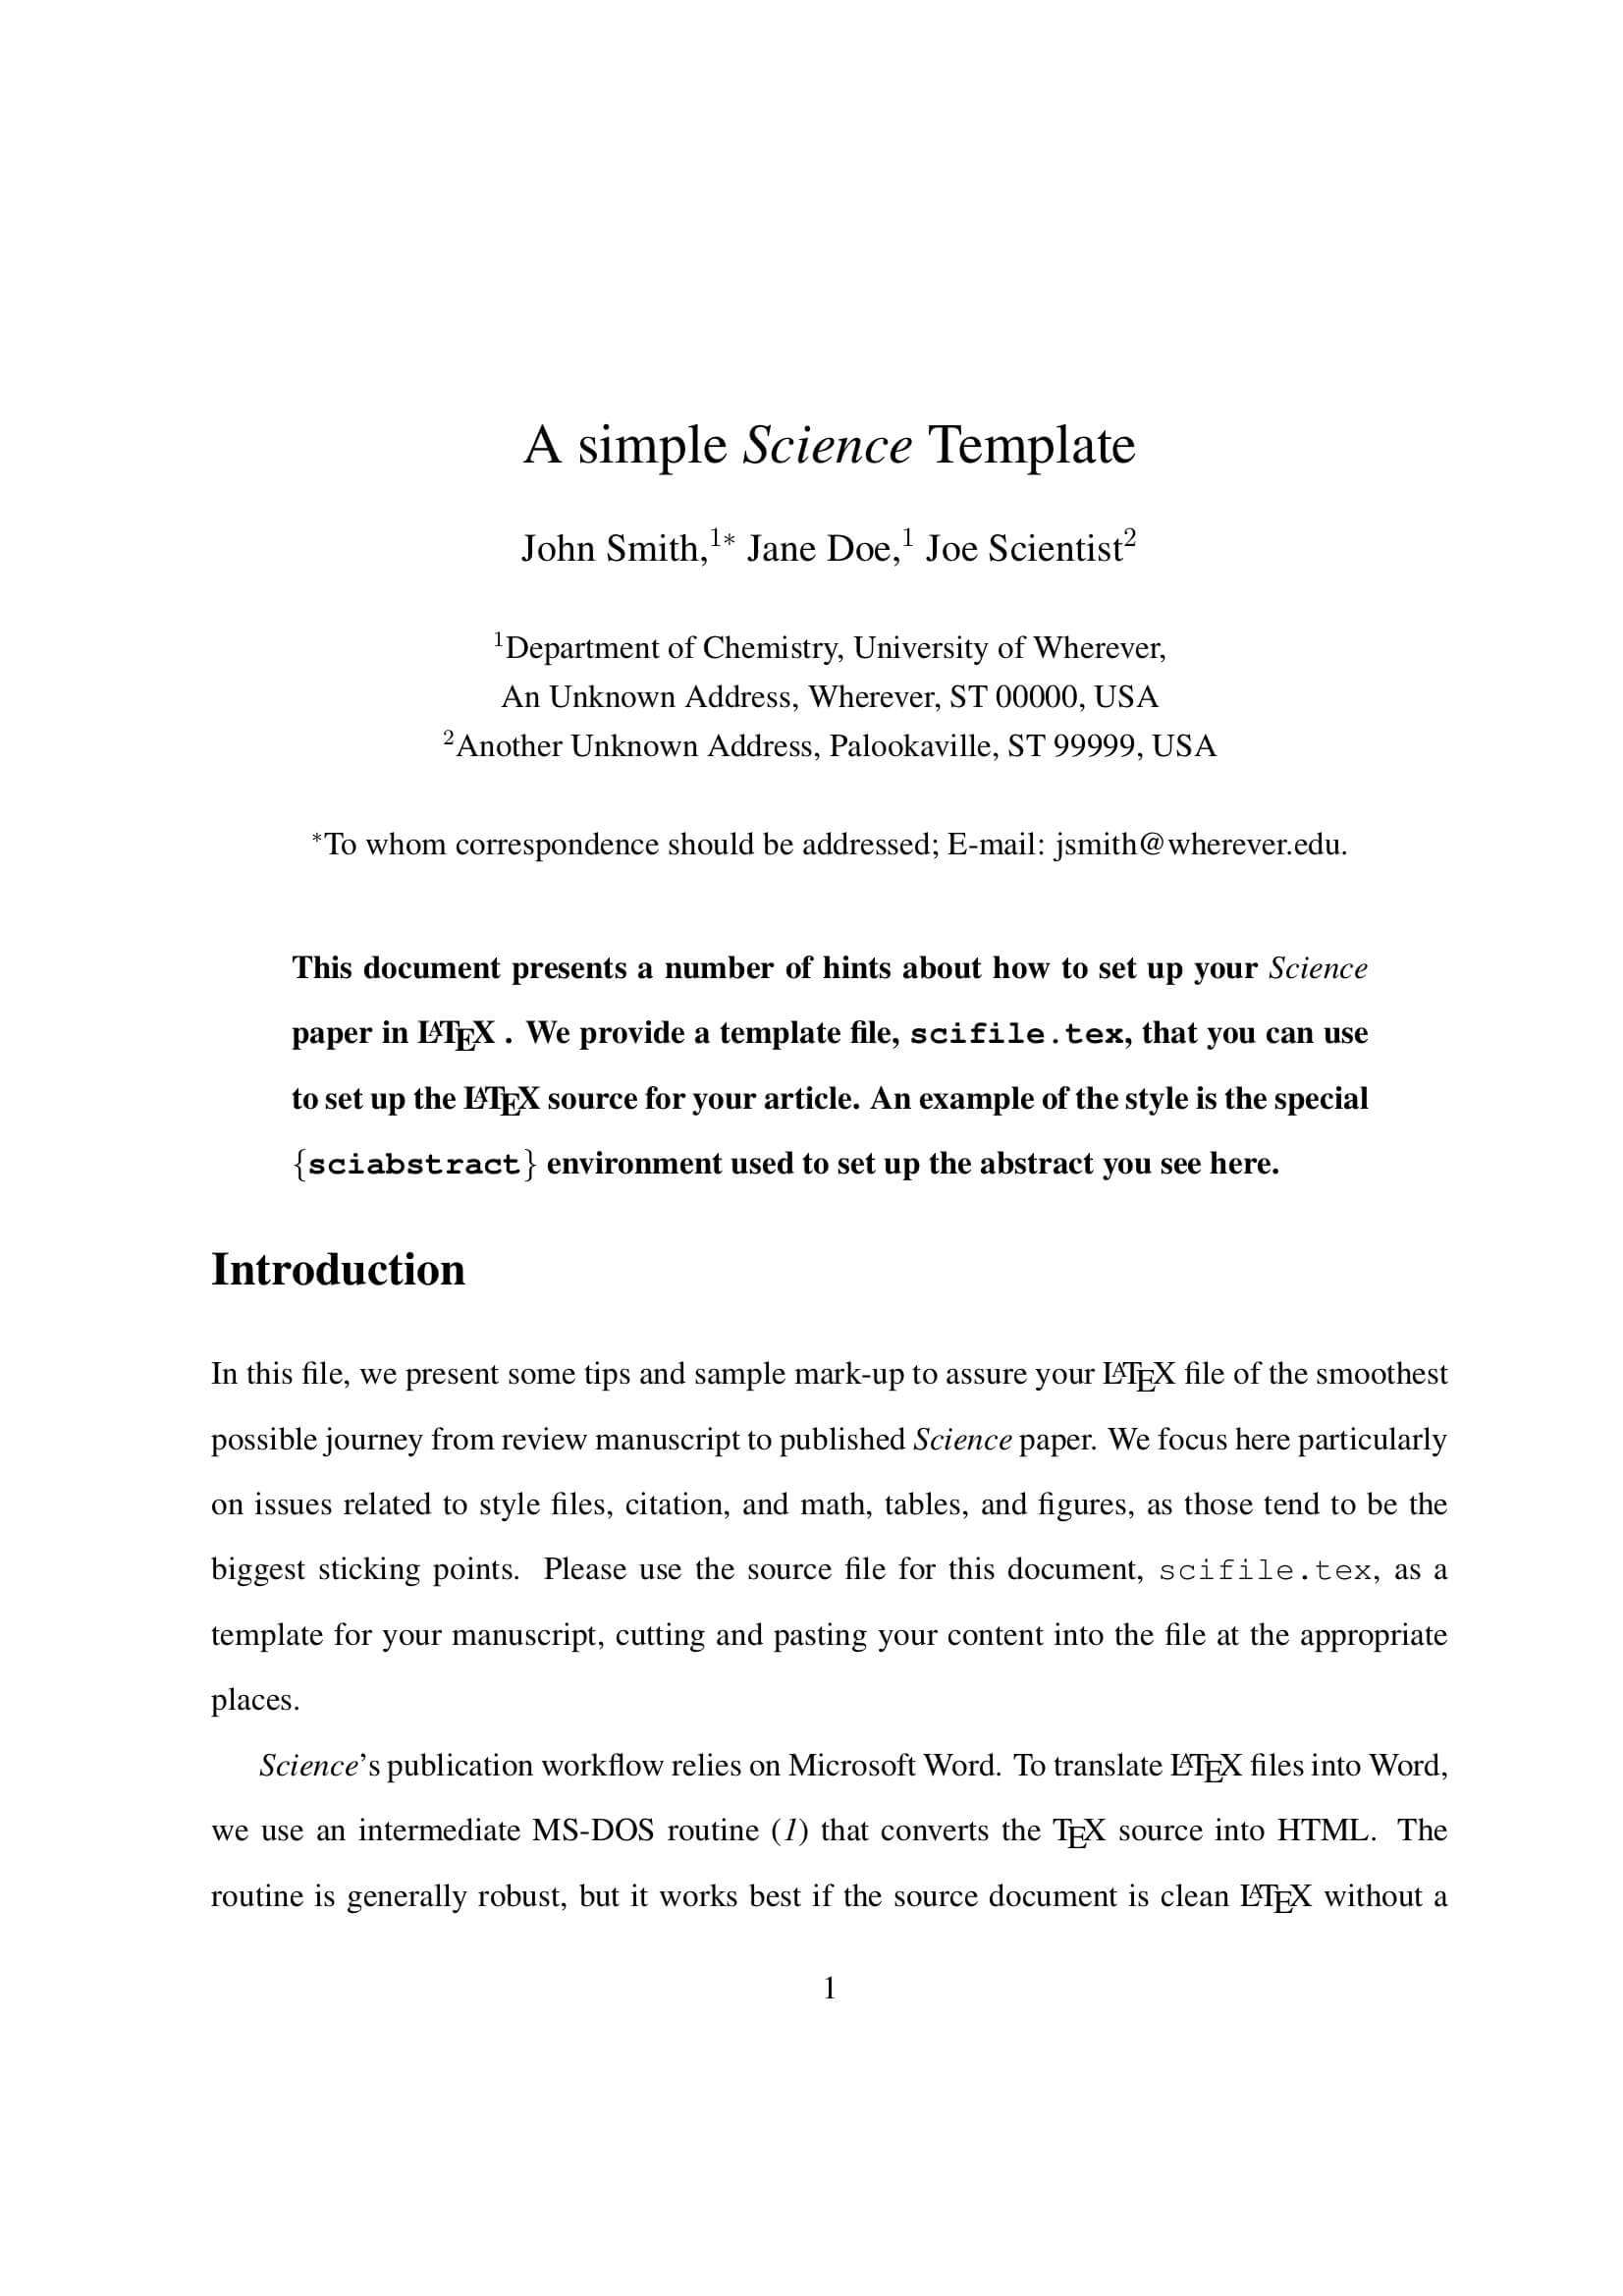 Review Paper Template - Forza.mbiconsultingltd With Scientific Paper Template Word 2010